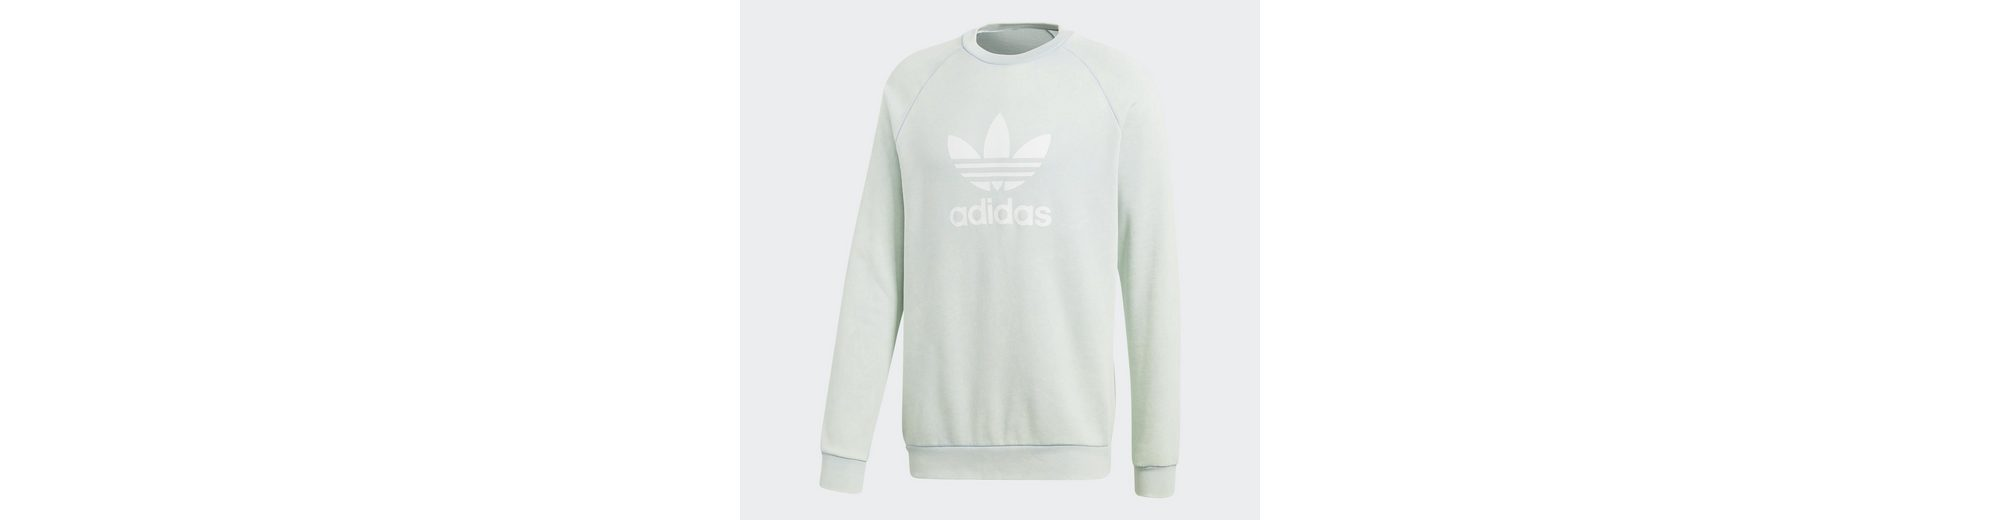 Warm Longpullover Longpullover adidas Up Sweatshirt Longpullover adidas Up Trefoil Originals Trefoil Sweatshirt Originals Warm Originals adidas Trefoil 76qgxUWfp